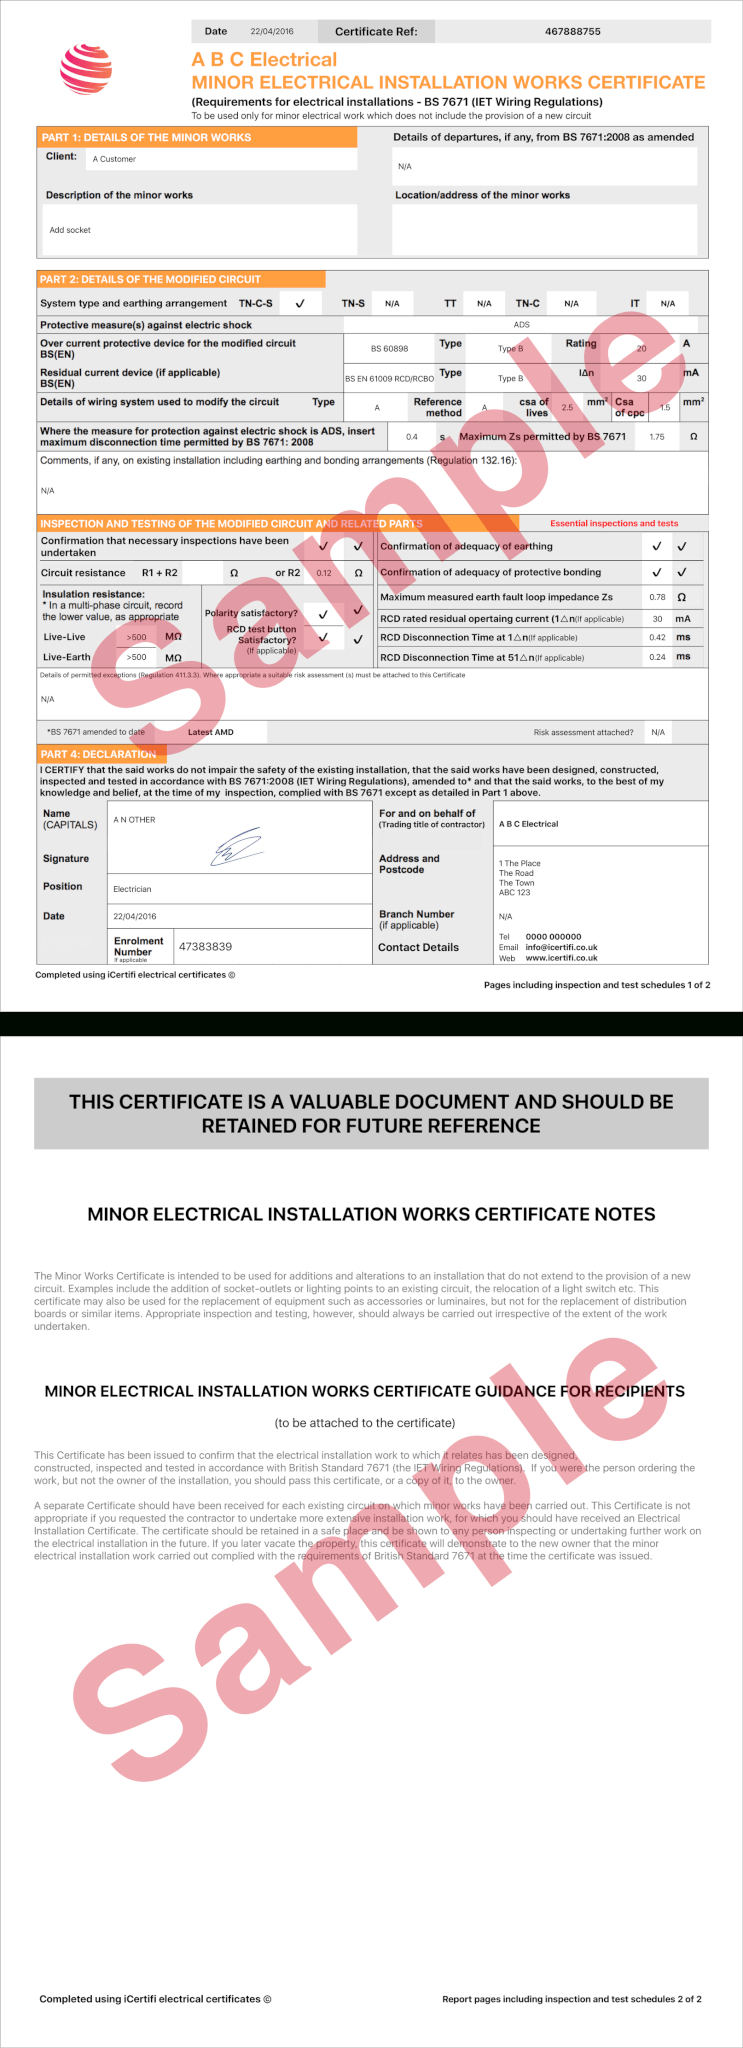 Electrical Certificate  Example Minor Works Certificate  Icertifi With Minor Electrical Installation Works Certificate Template